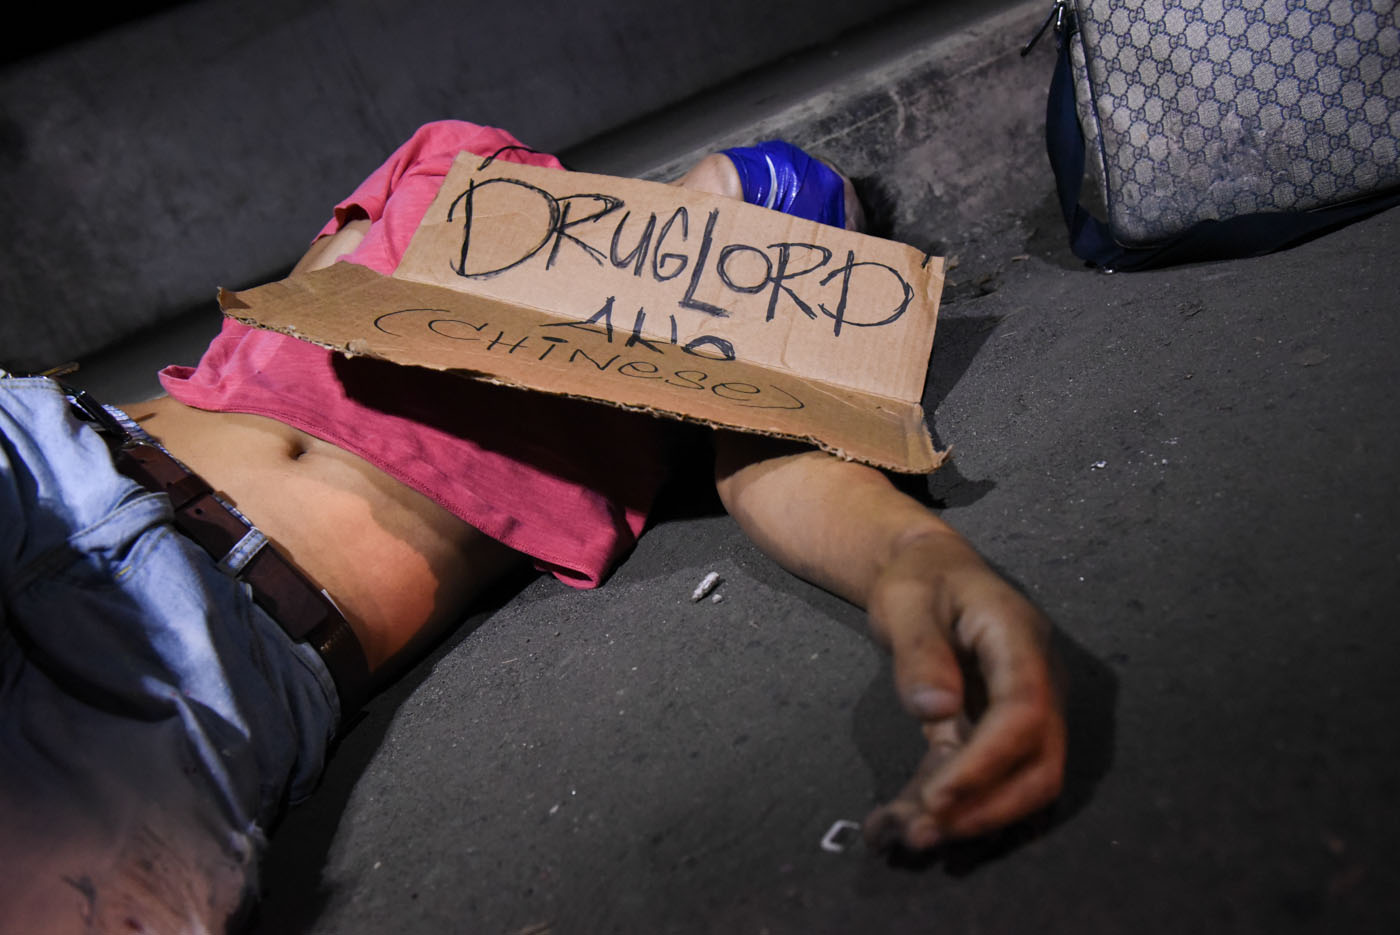 WAR ON DRUGS. A dead body with a sign board on a street in Manila on July 28, 2016. File photo by Alecs Ongcal/Rappler